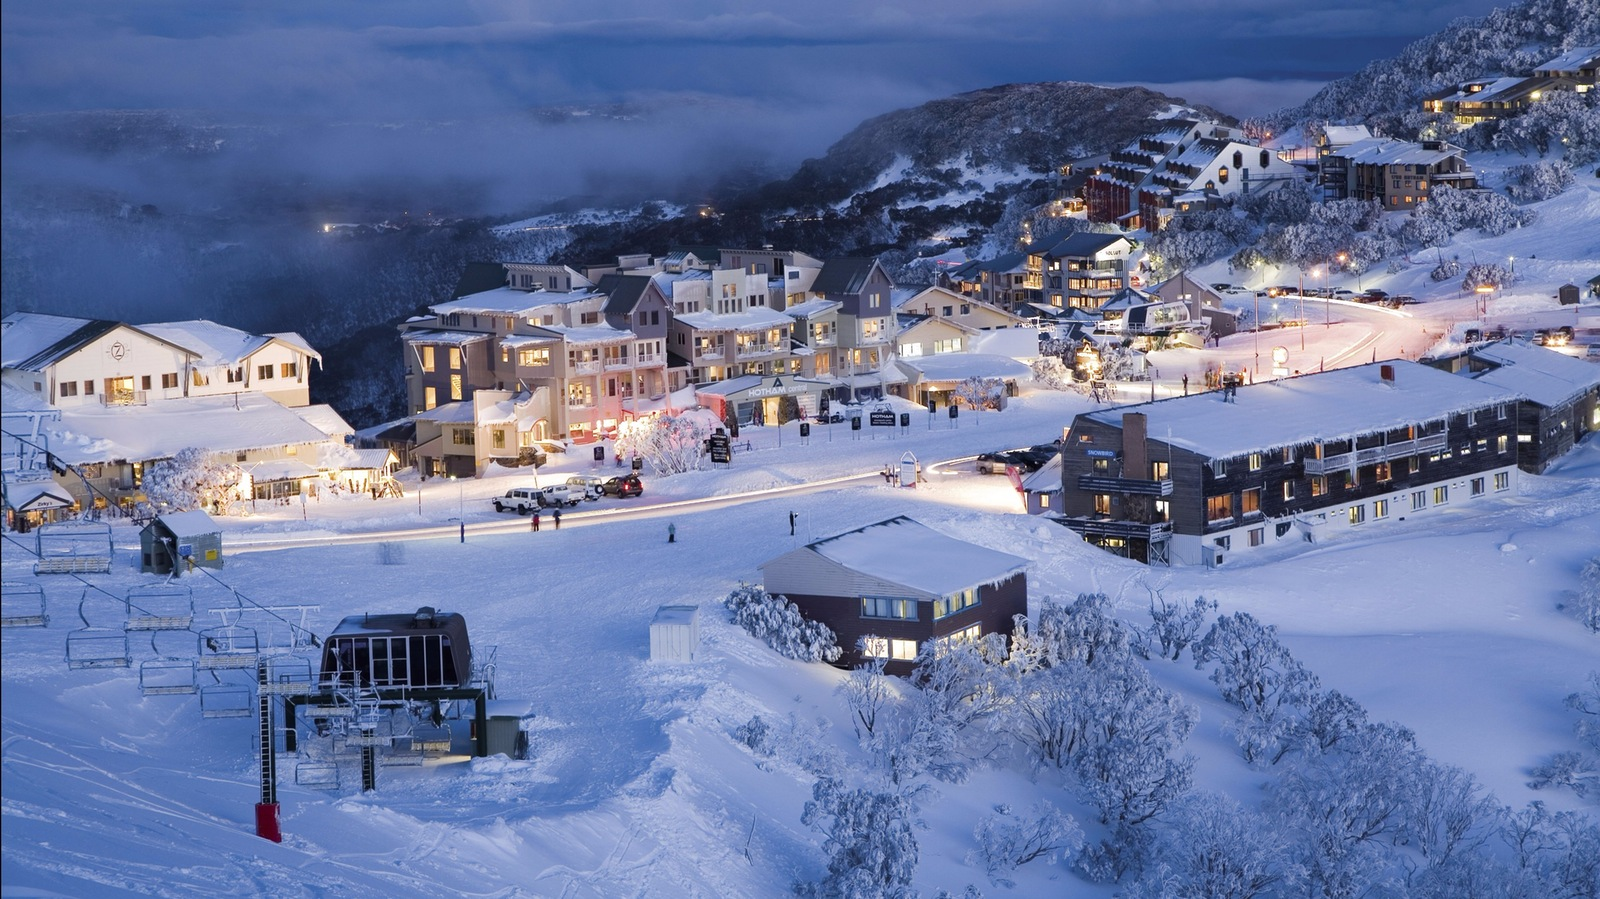 Mt Hotham, Luxury Snow Tour, Melbourne Australia